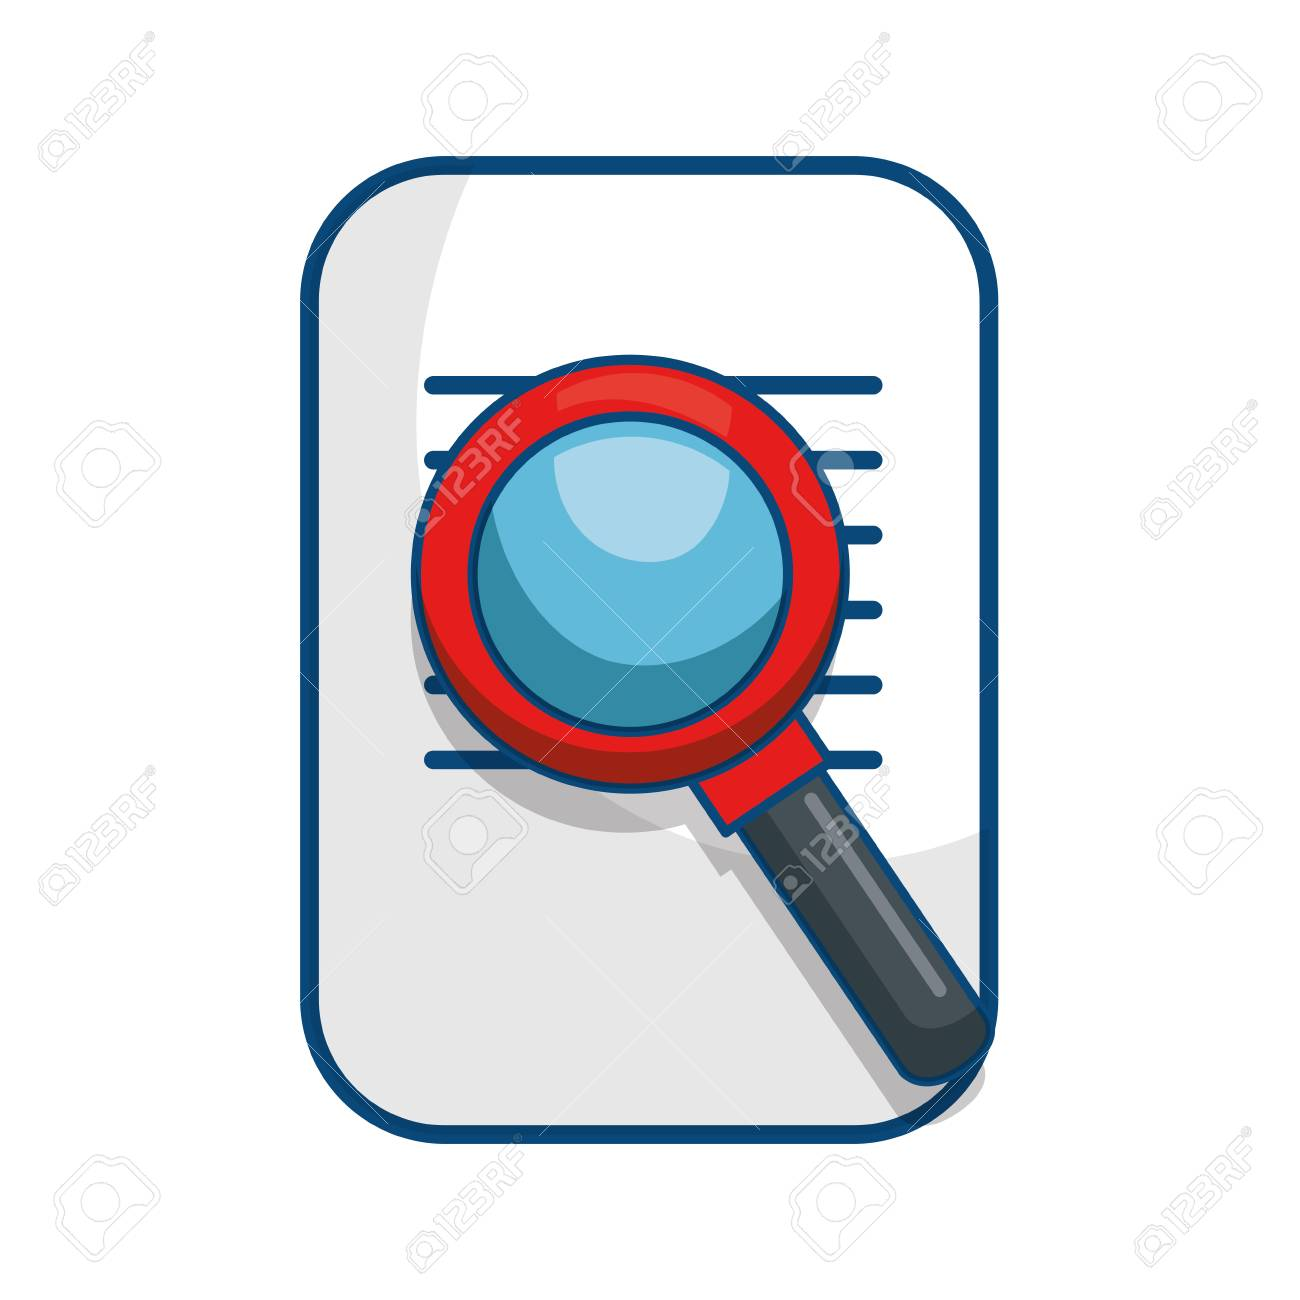 80048733-paper-page-and-magnifying-glass-icon-over-white-background-vector-illustration.jpg